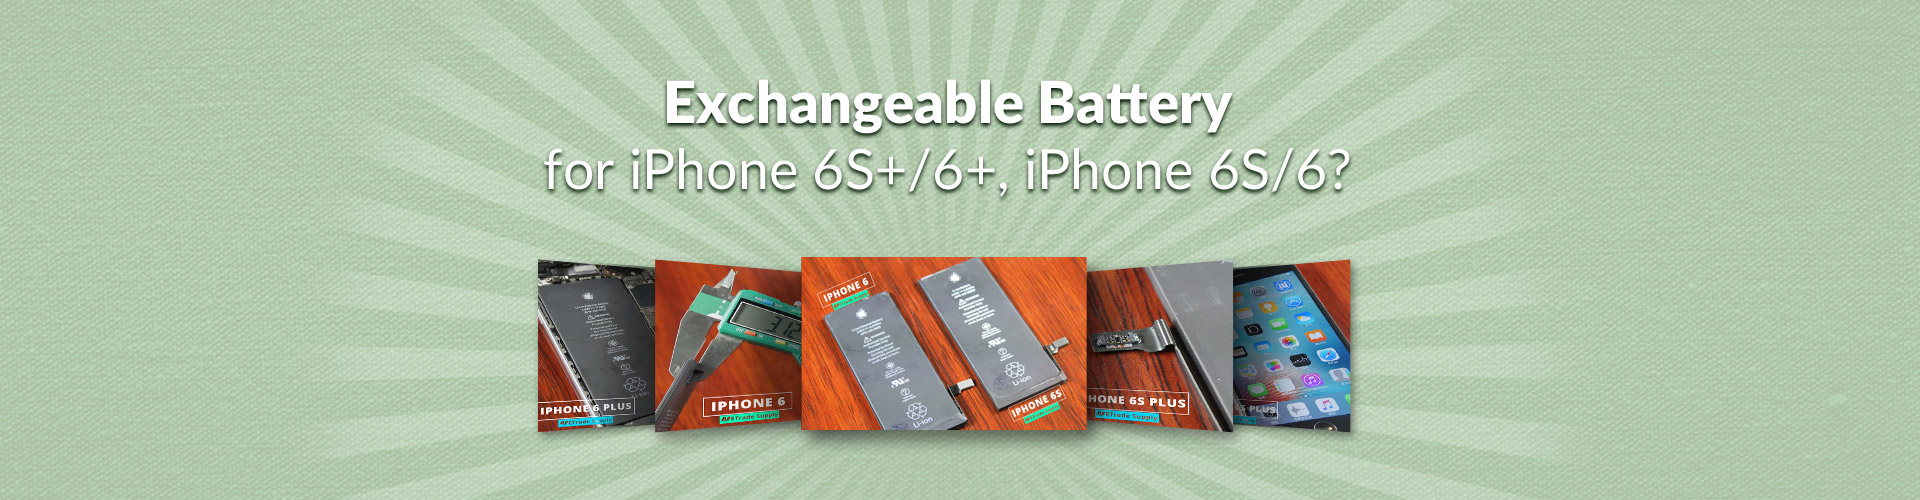 exchangeable battery for iPhone